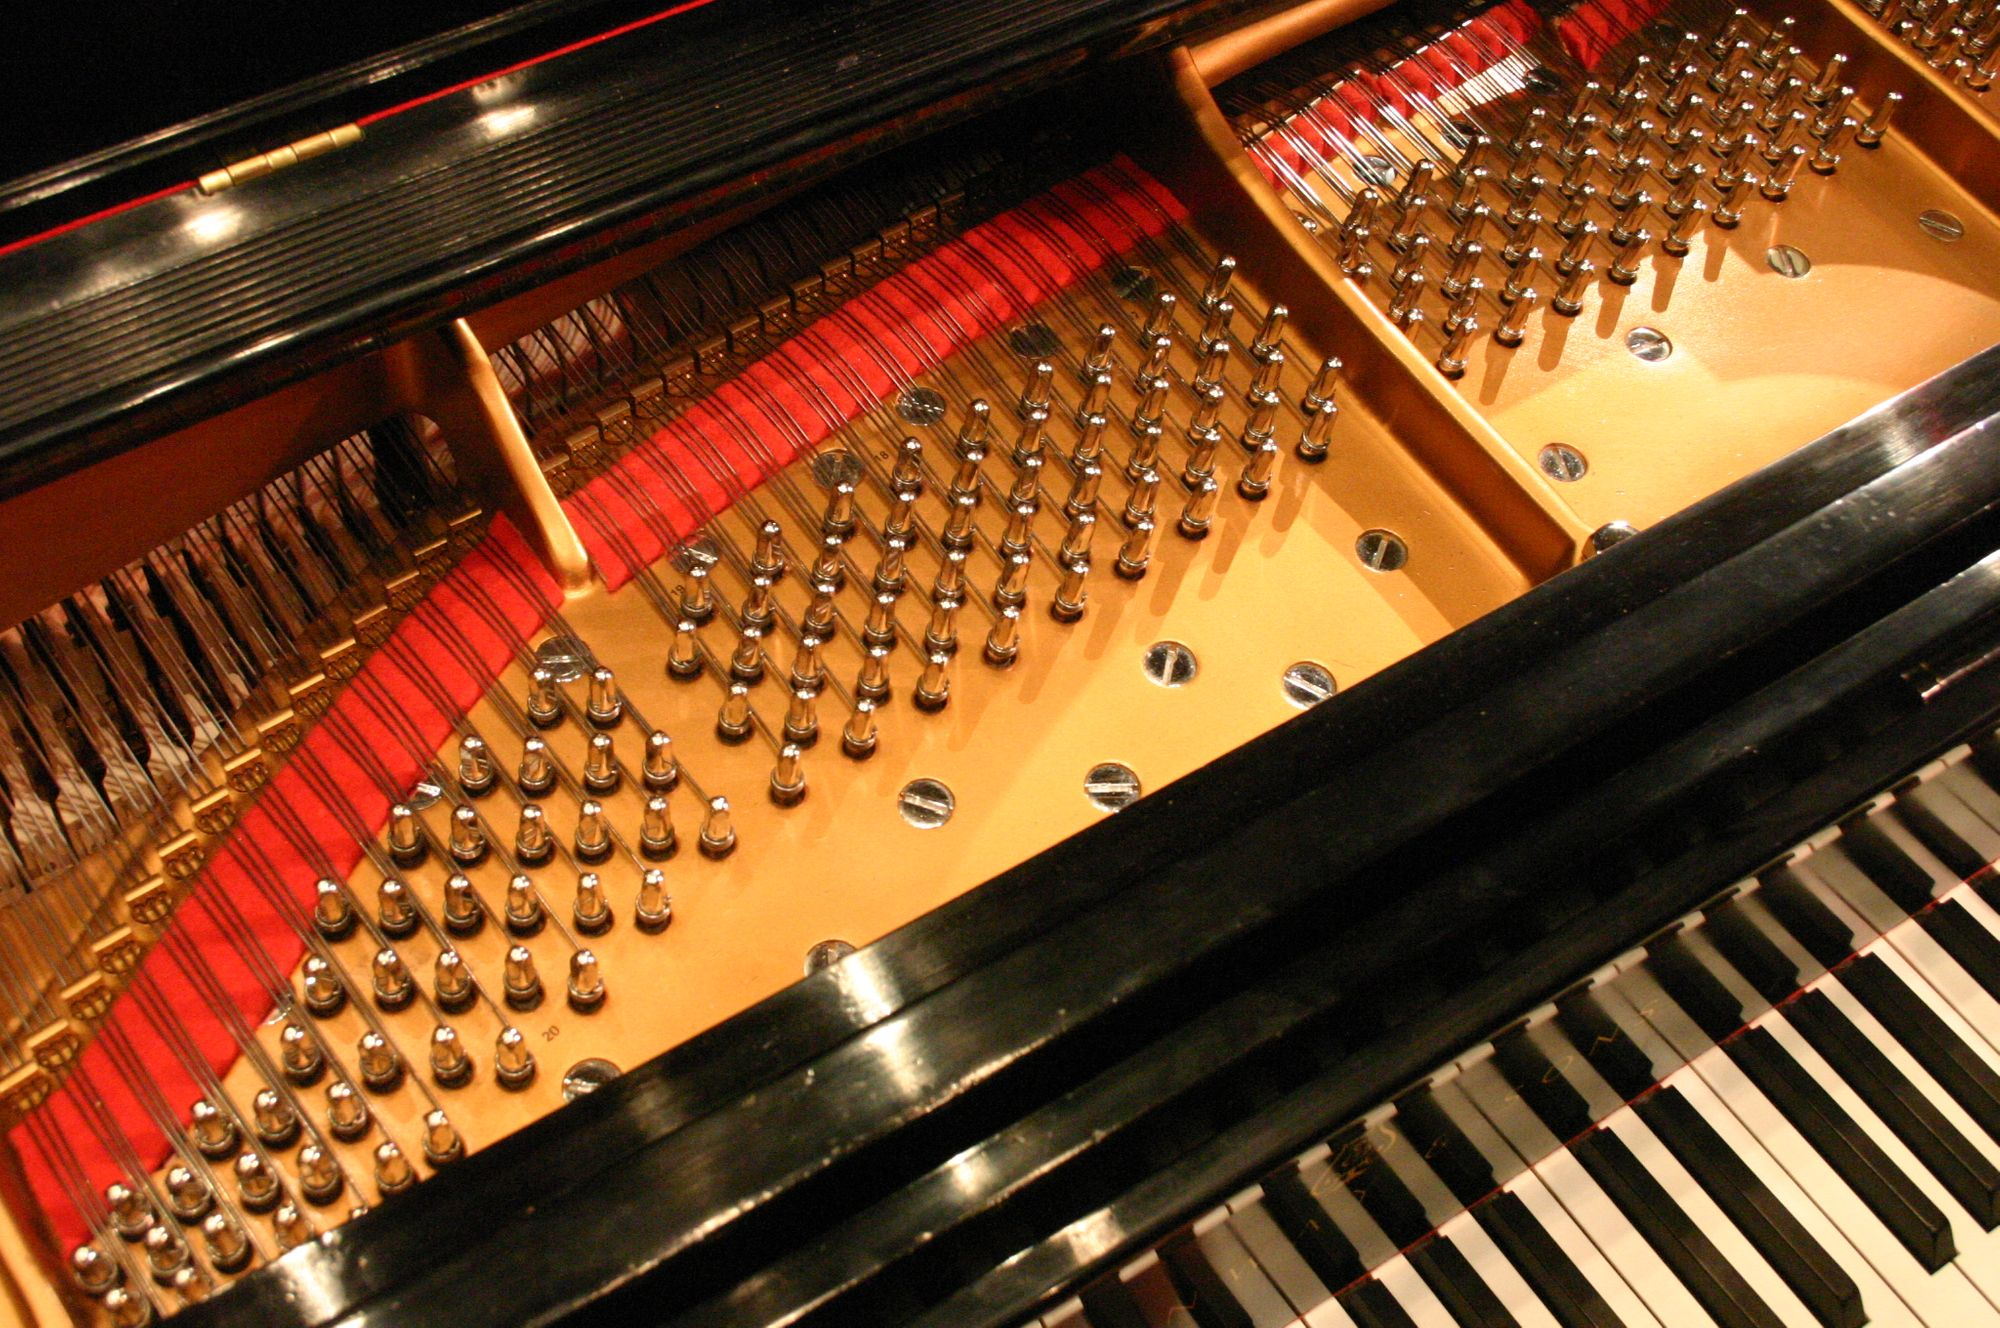 How to Move a Piano Without Destroying It